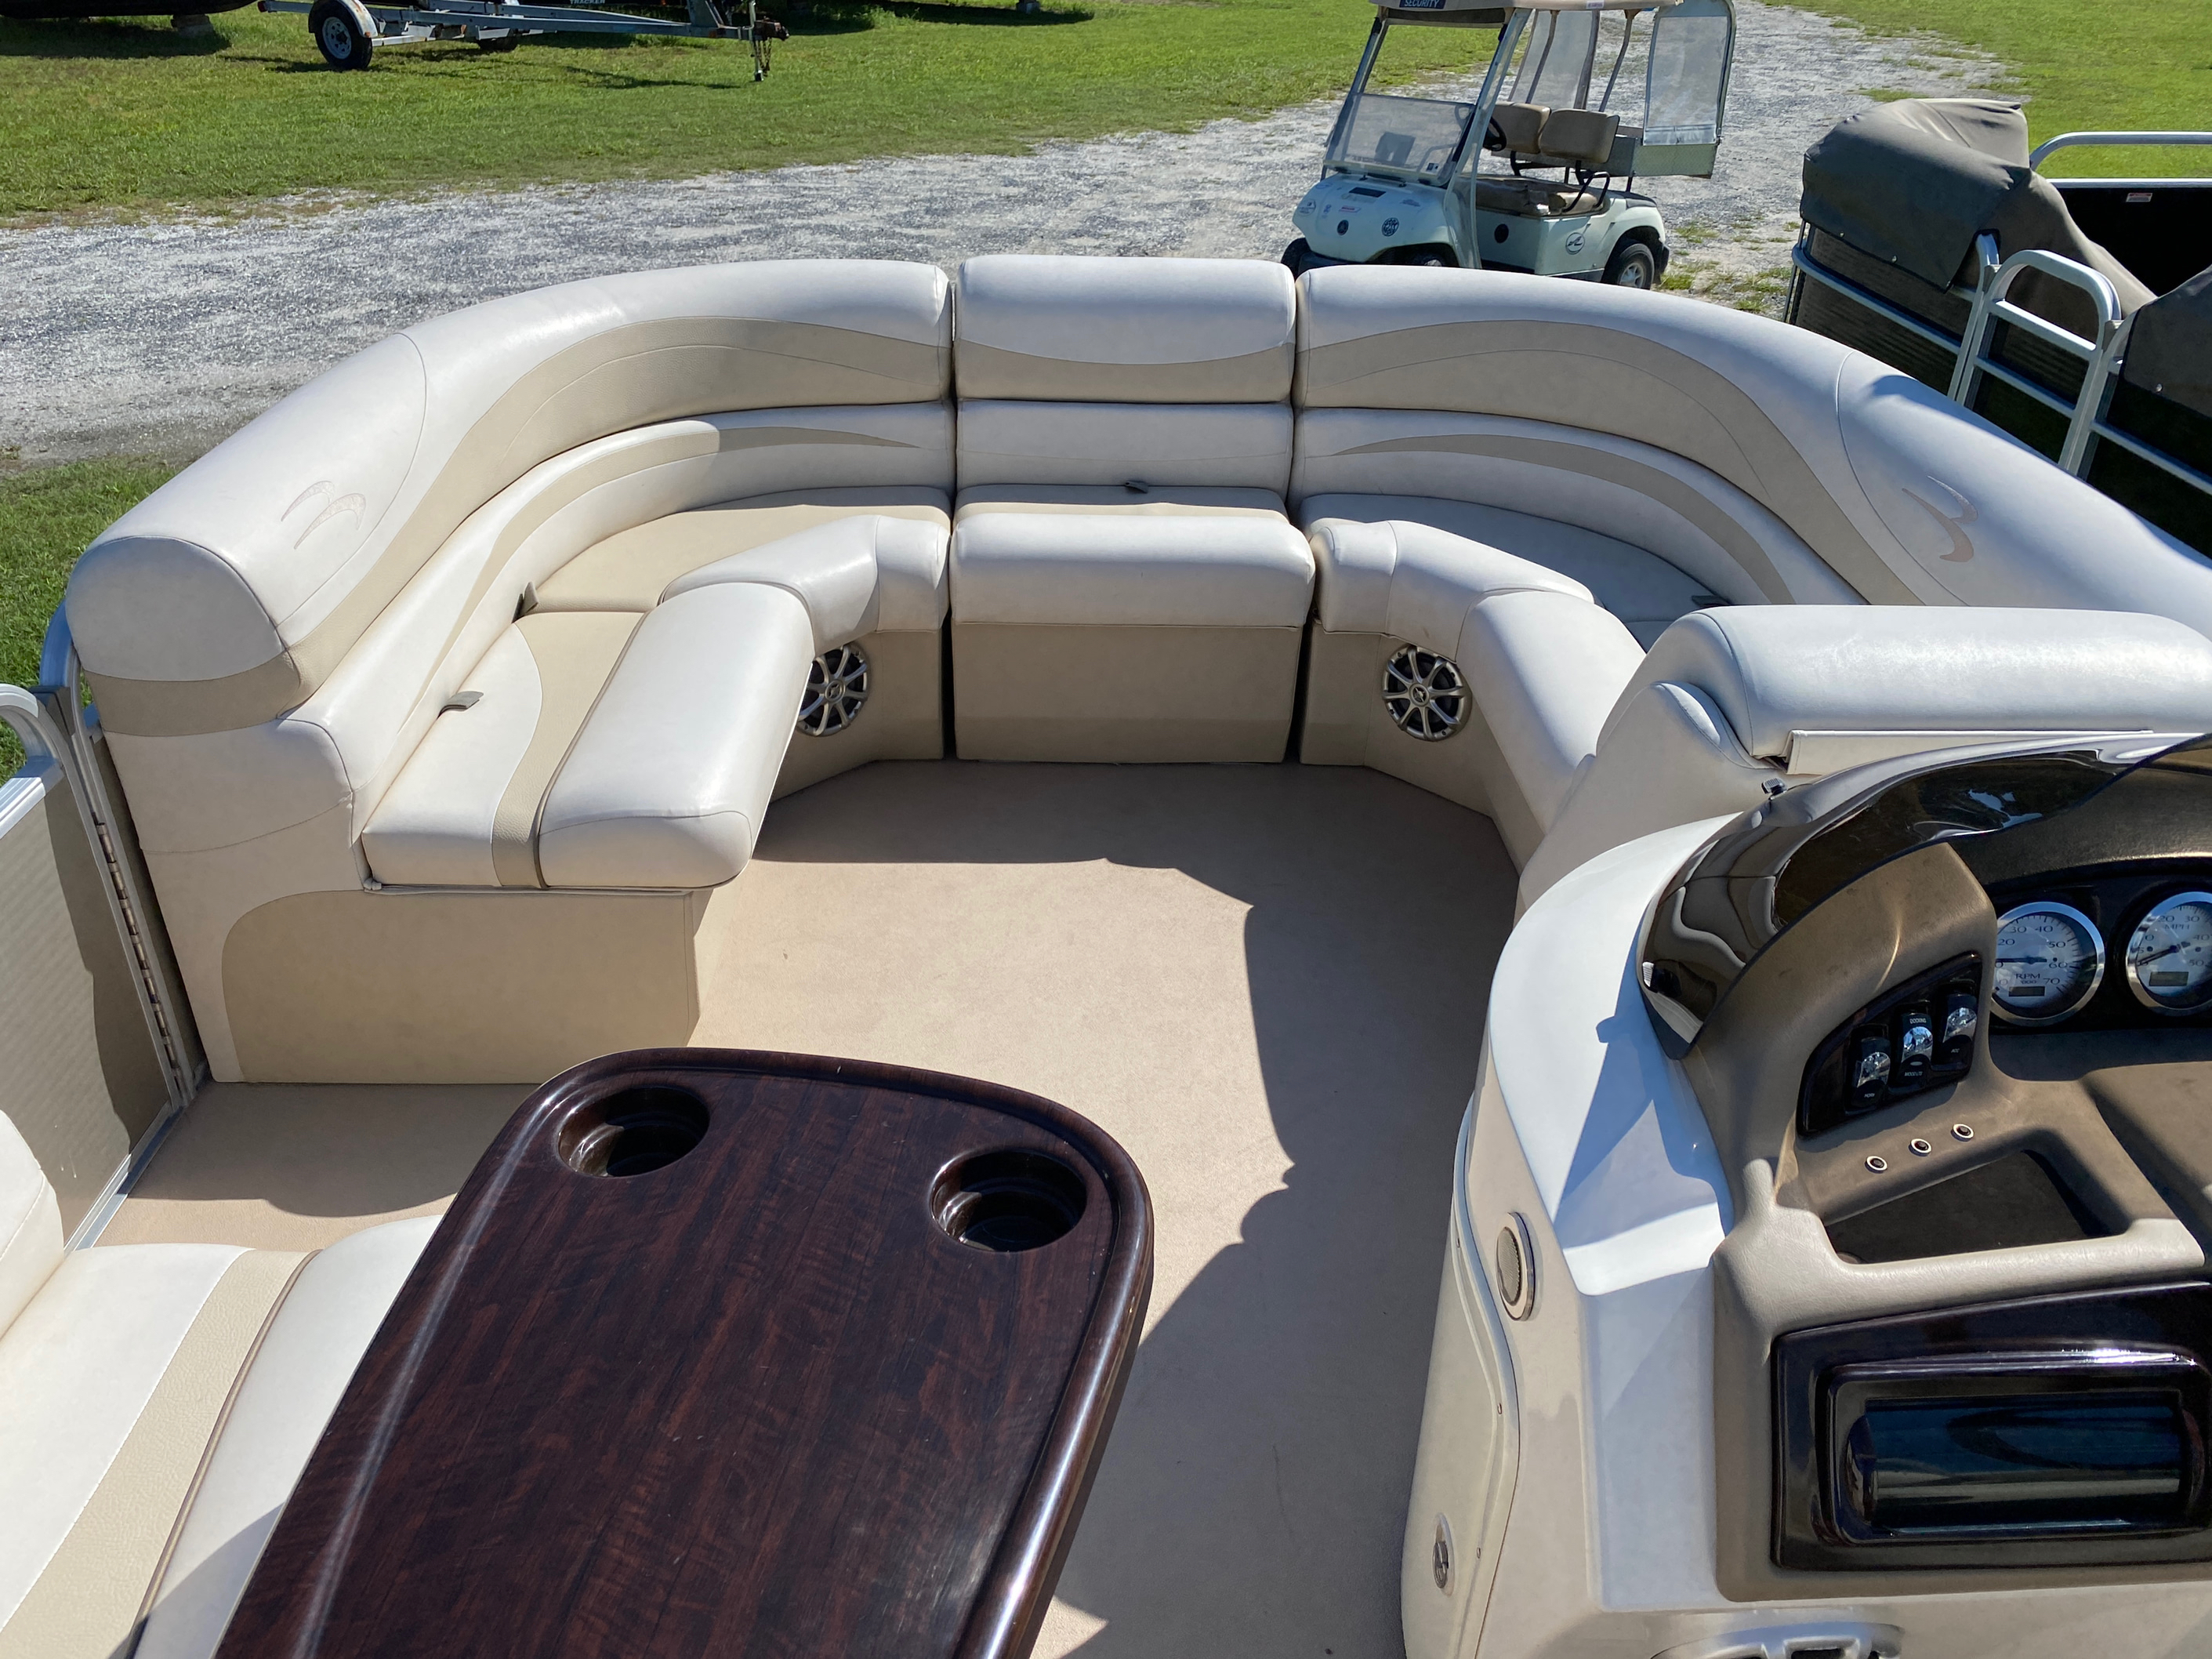 2012 Bennington boat for sale, model of the boat is 2275 GCW Pontoon & Image # 6 of 11